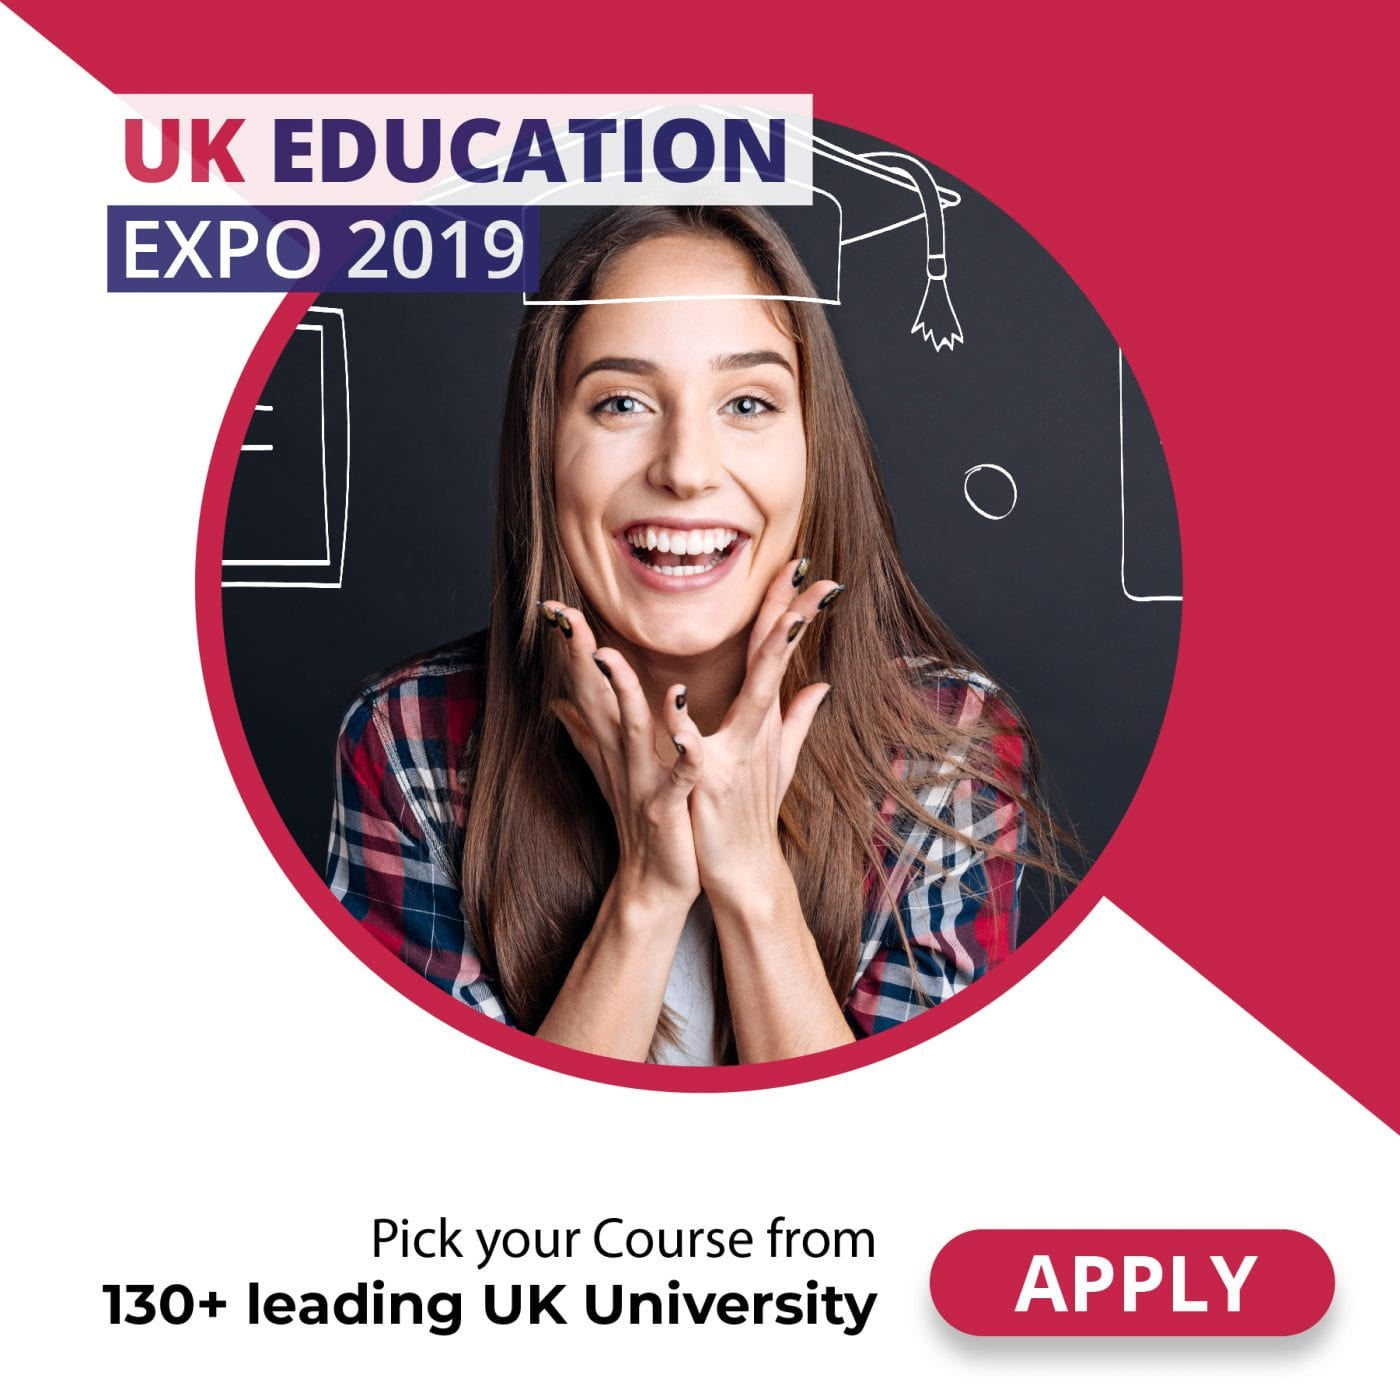 UK Education Expo Sylhet Feb 2019